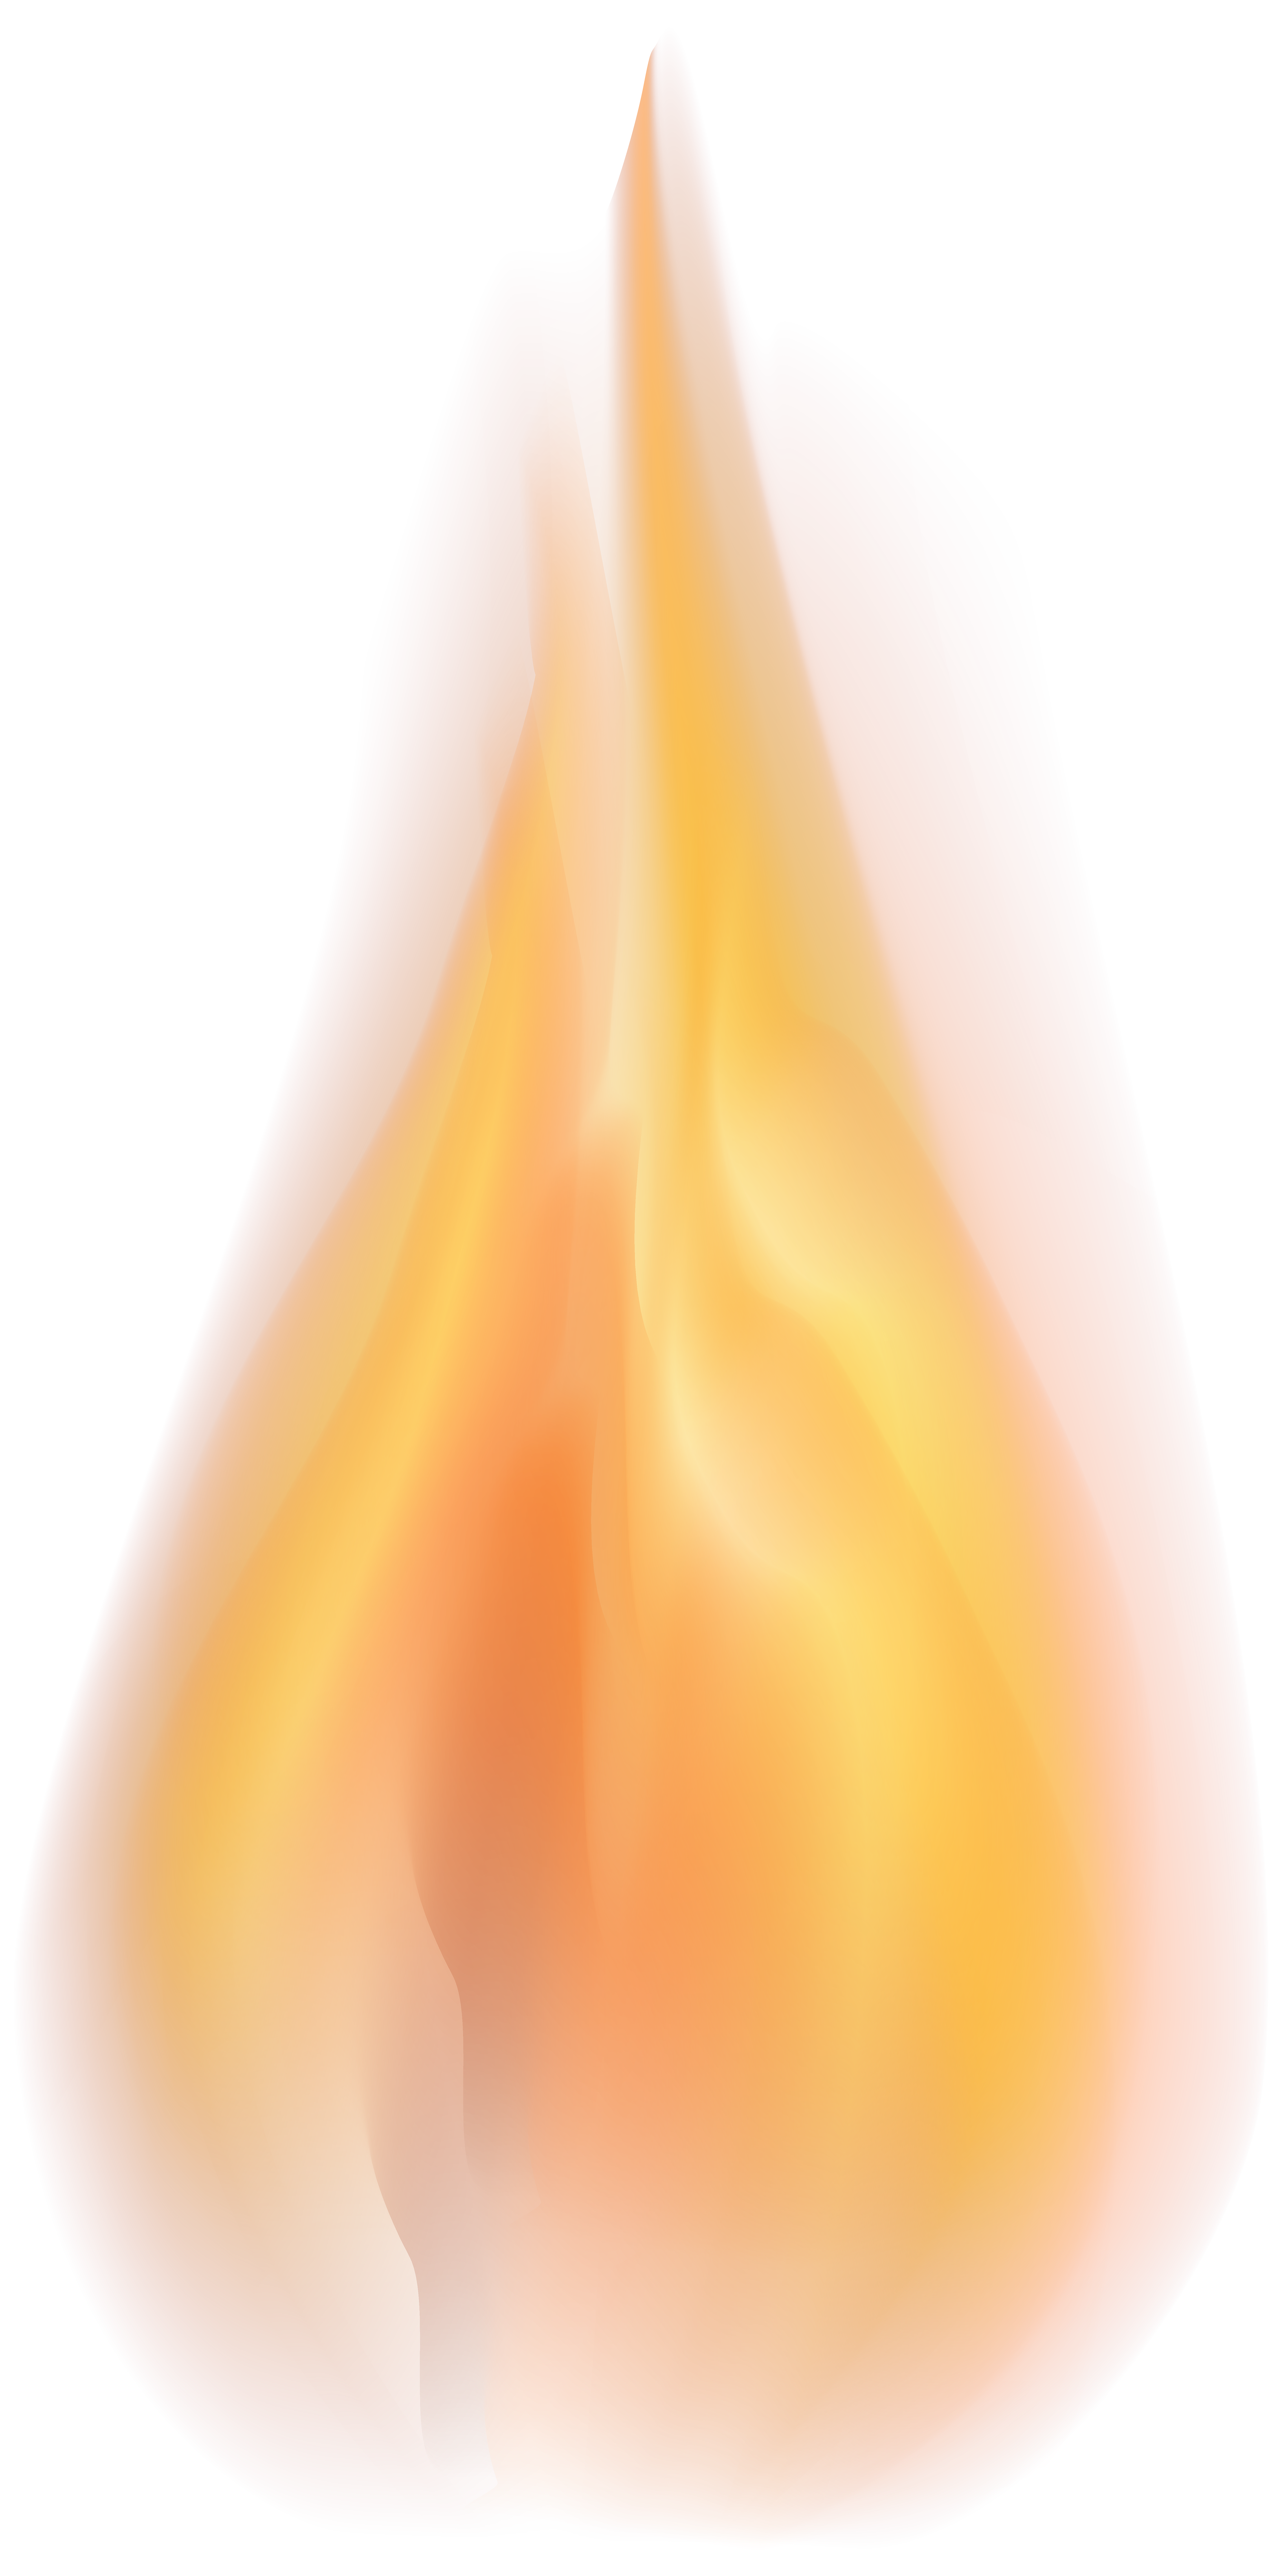 Fire Flames Wonderful Picture Images PNG Images